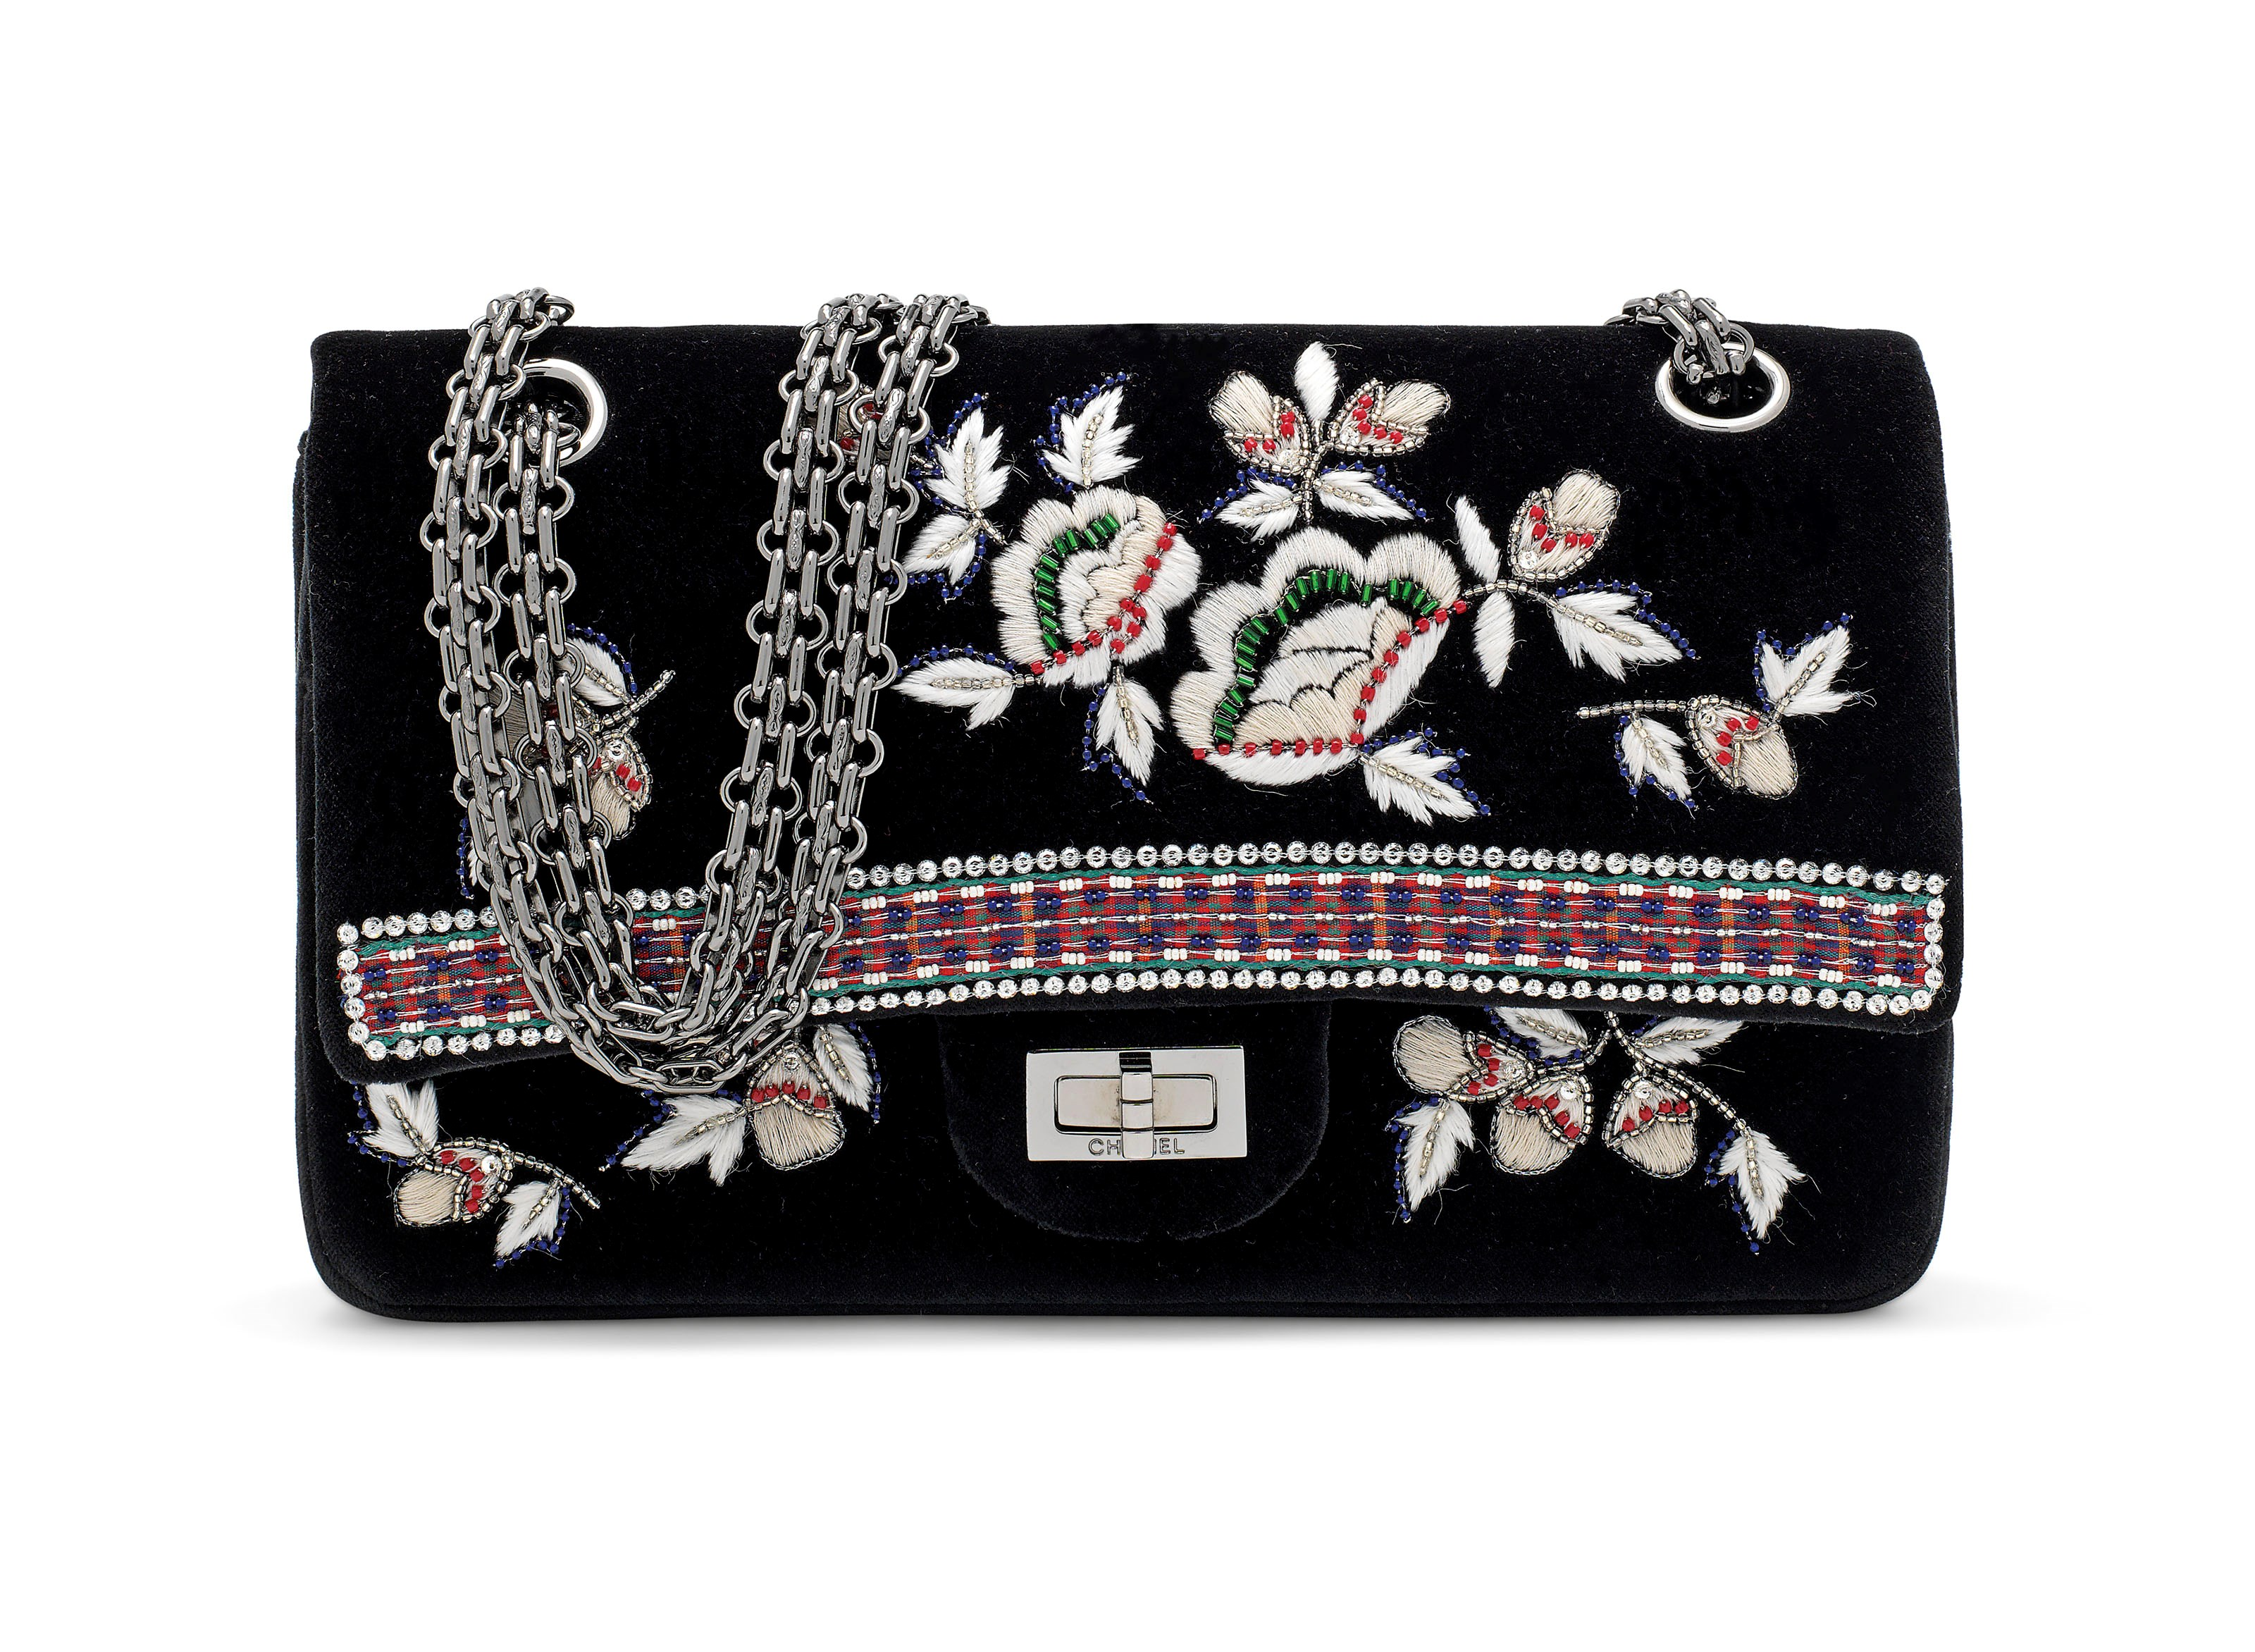 A Métier dArts Paris-Salzburg Lesage embroidery & velvet medium double flap, Chanel, 2016. 25 w x 15 h x 8 d cm. Sold for £5,625 on 12 December 2018 at Christie's in London